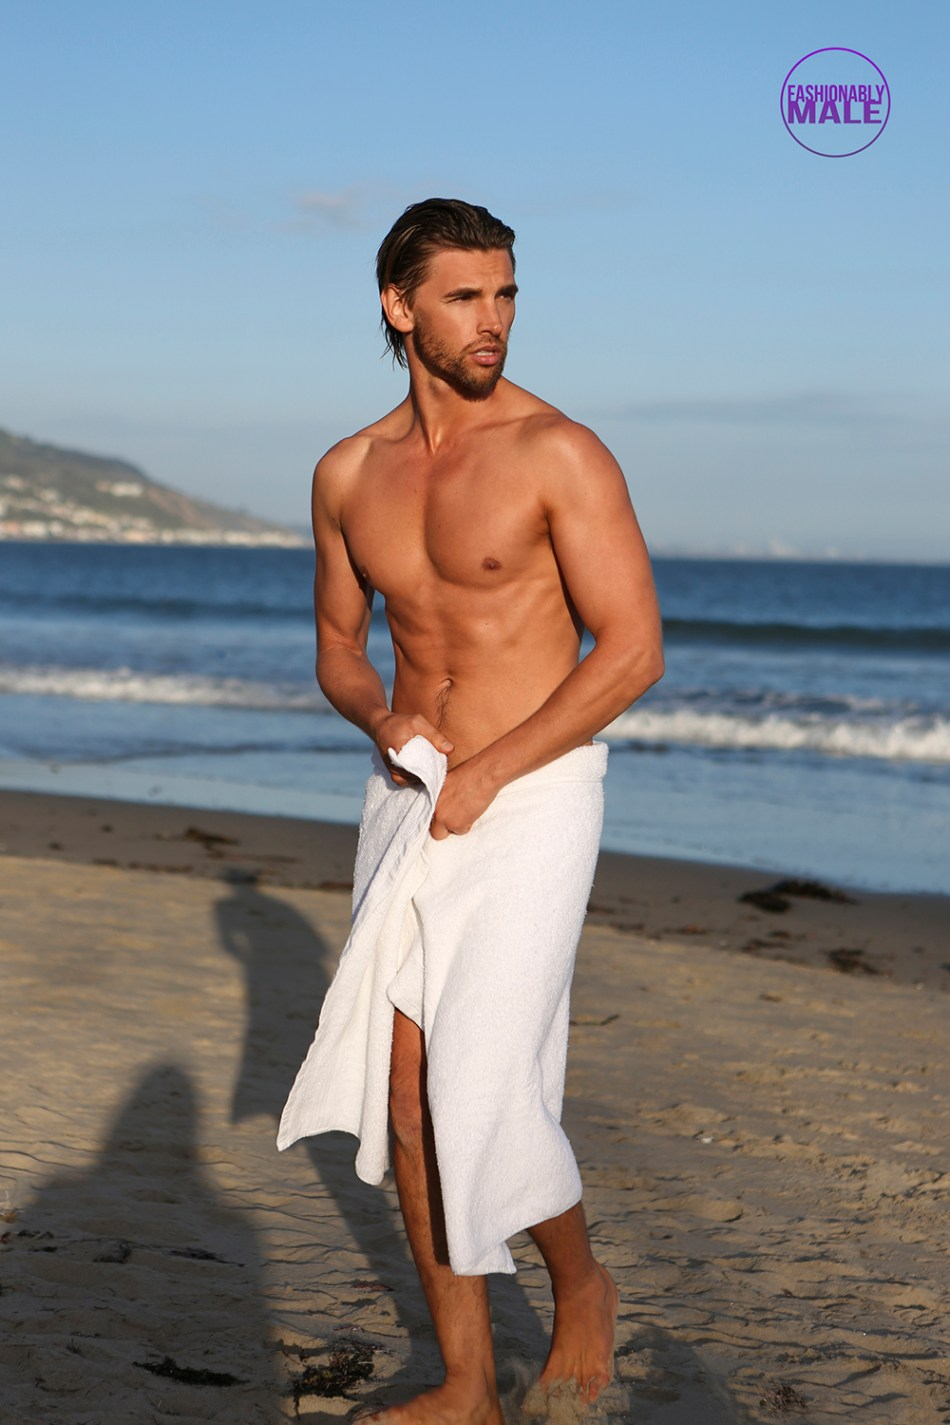 This is the first time we post a complete summer shots with Australian male model Jason John thanks to photographer Michael Dar. In the past, PnV Network shared an interview with the model, that also was posted on Vulkan Magazine. So this is the first we posts fresh snaps from him.